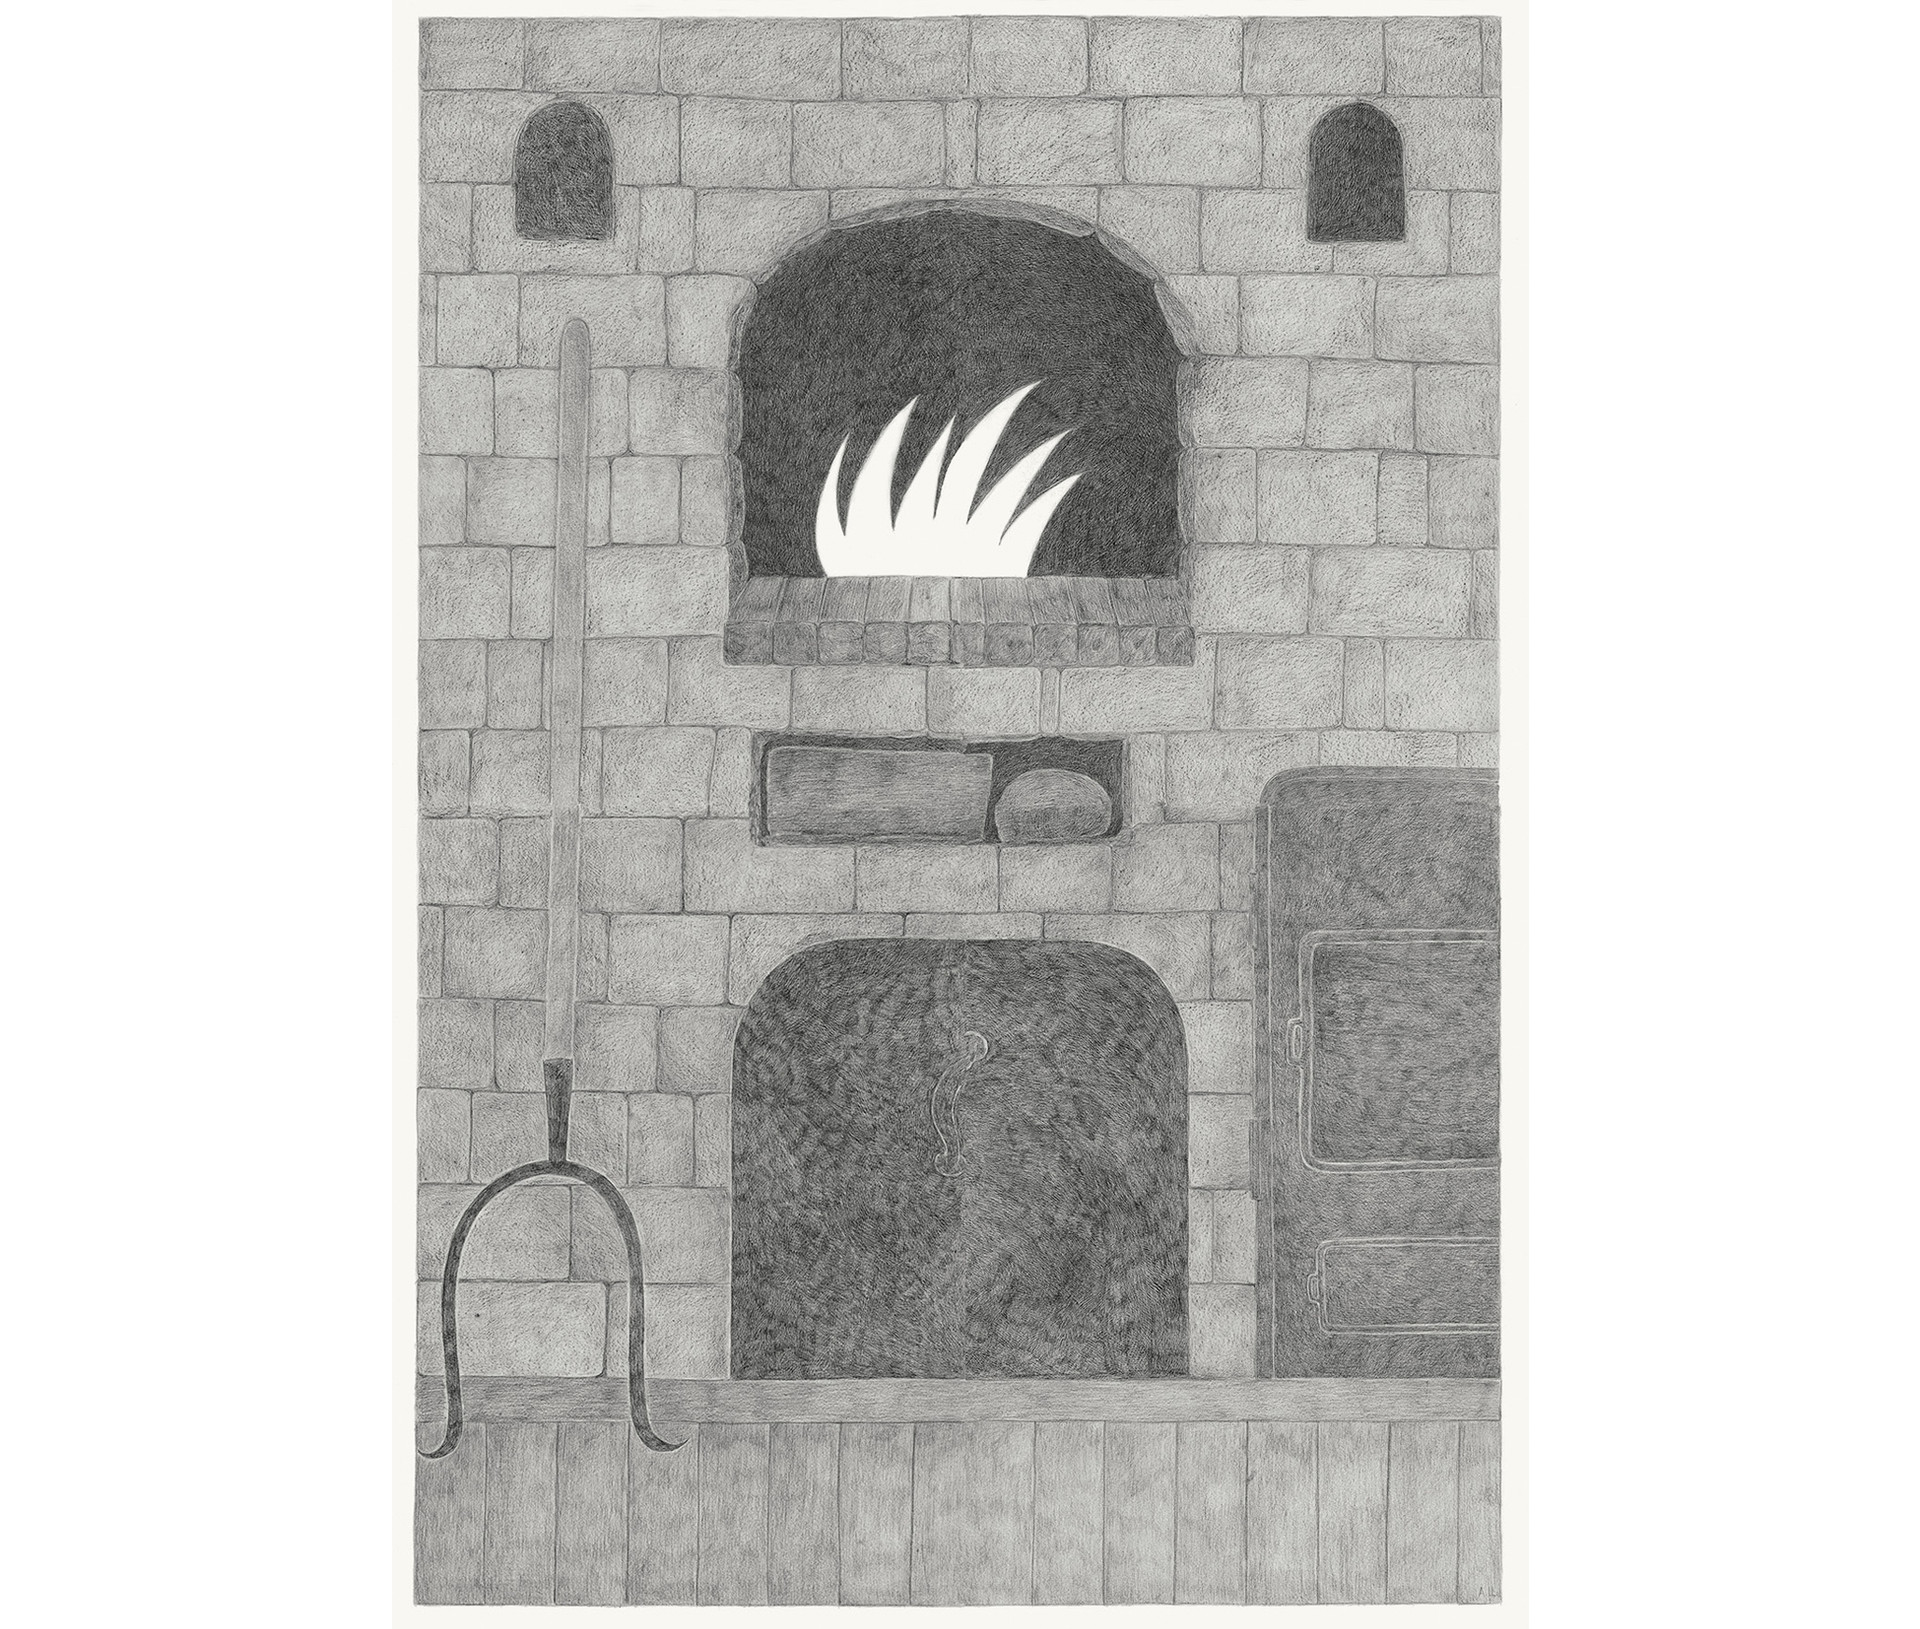 Oven, 2013. Pencils on paper, 118 × 94 cm